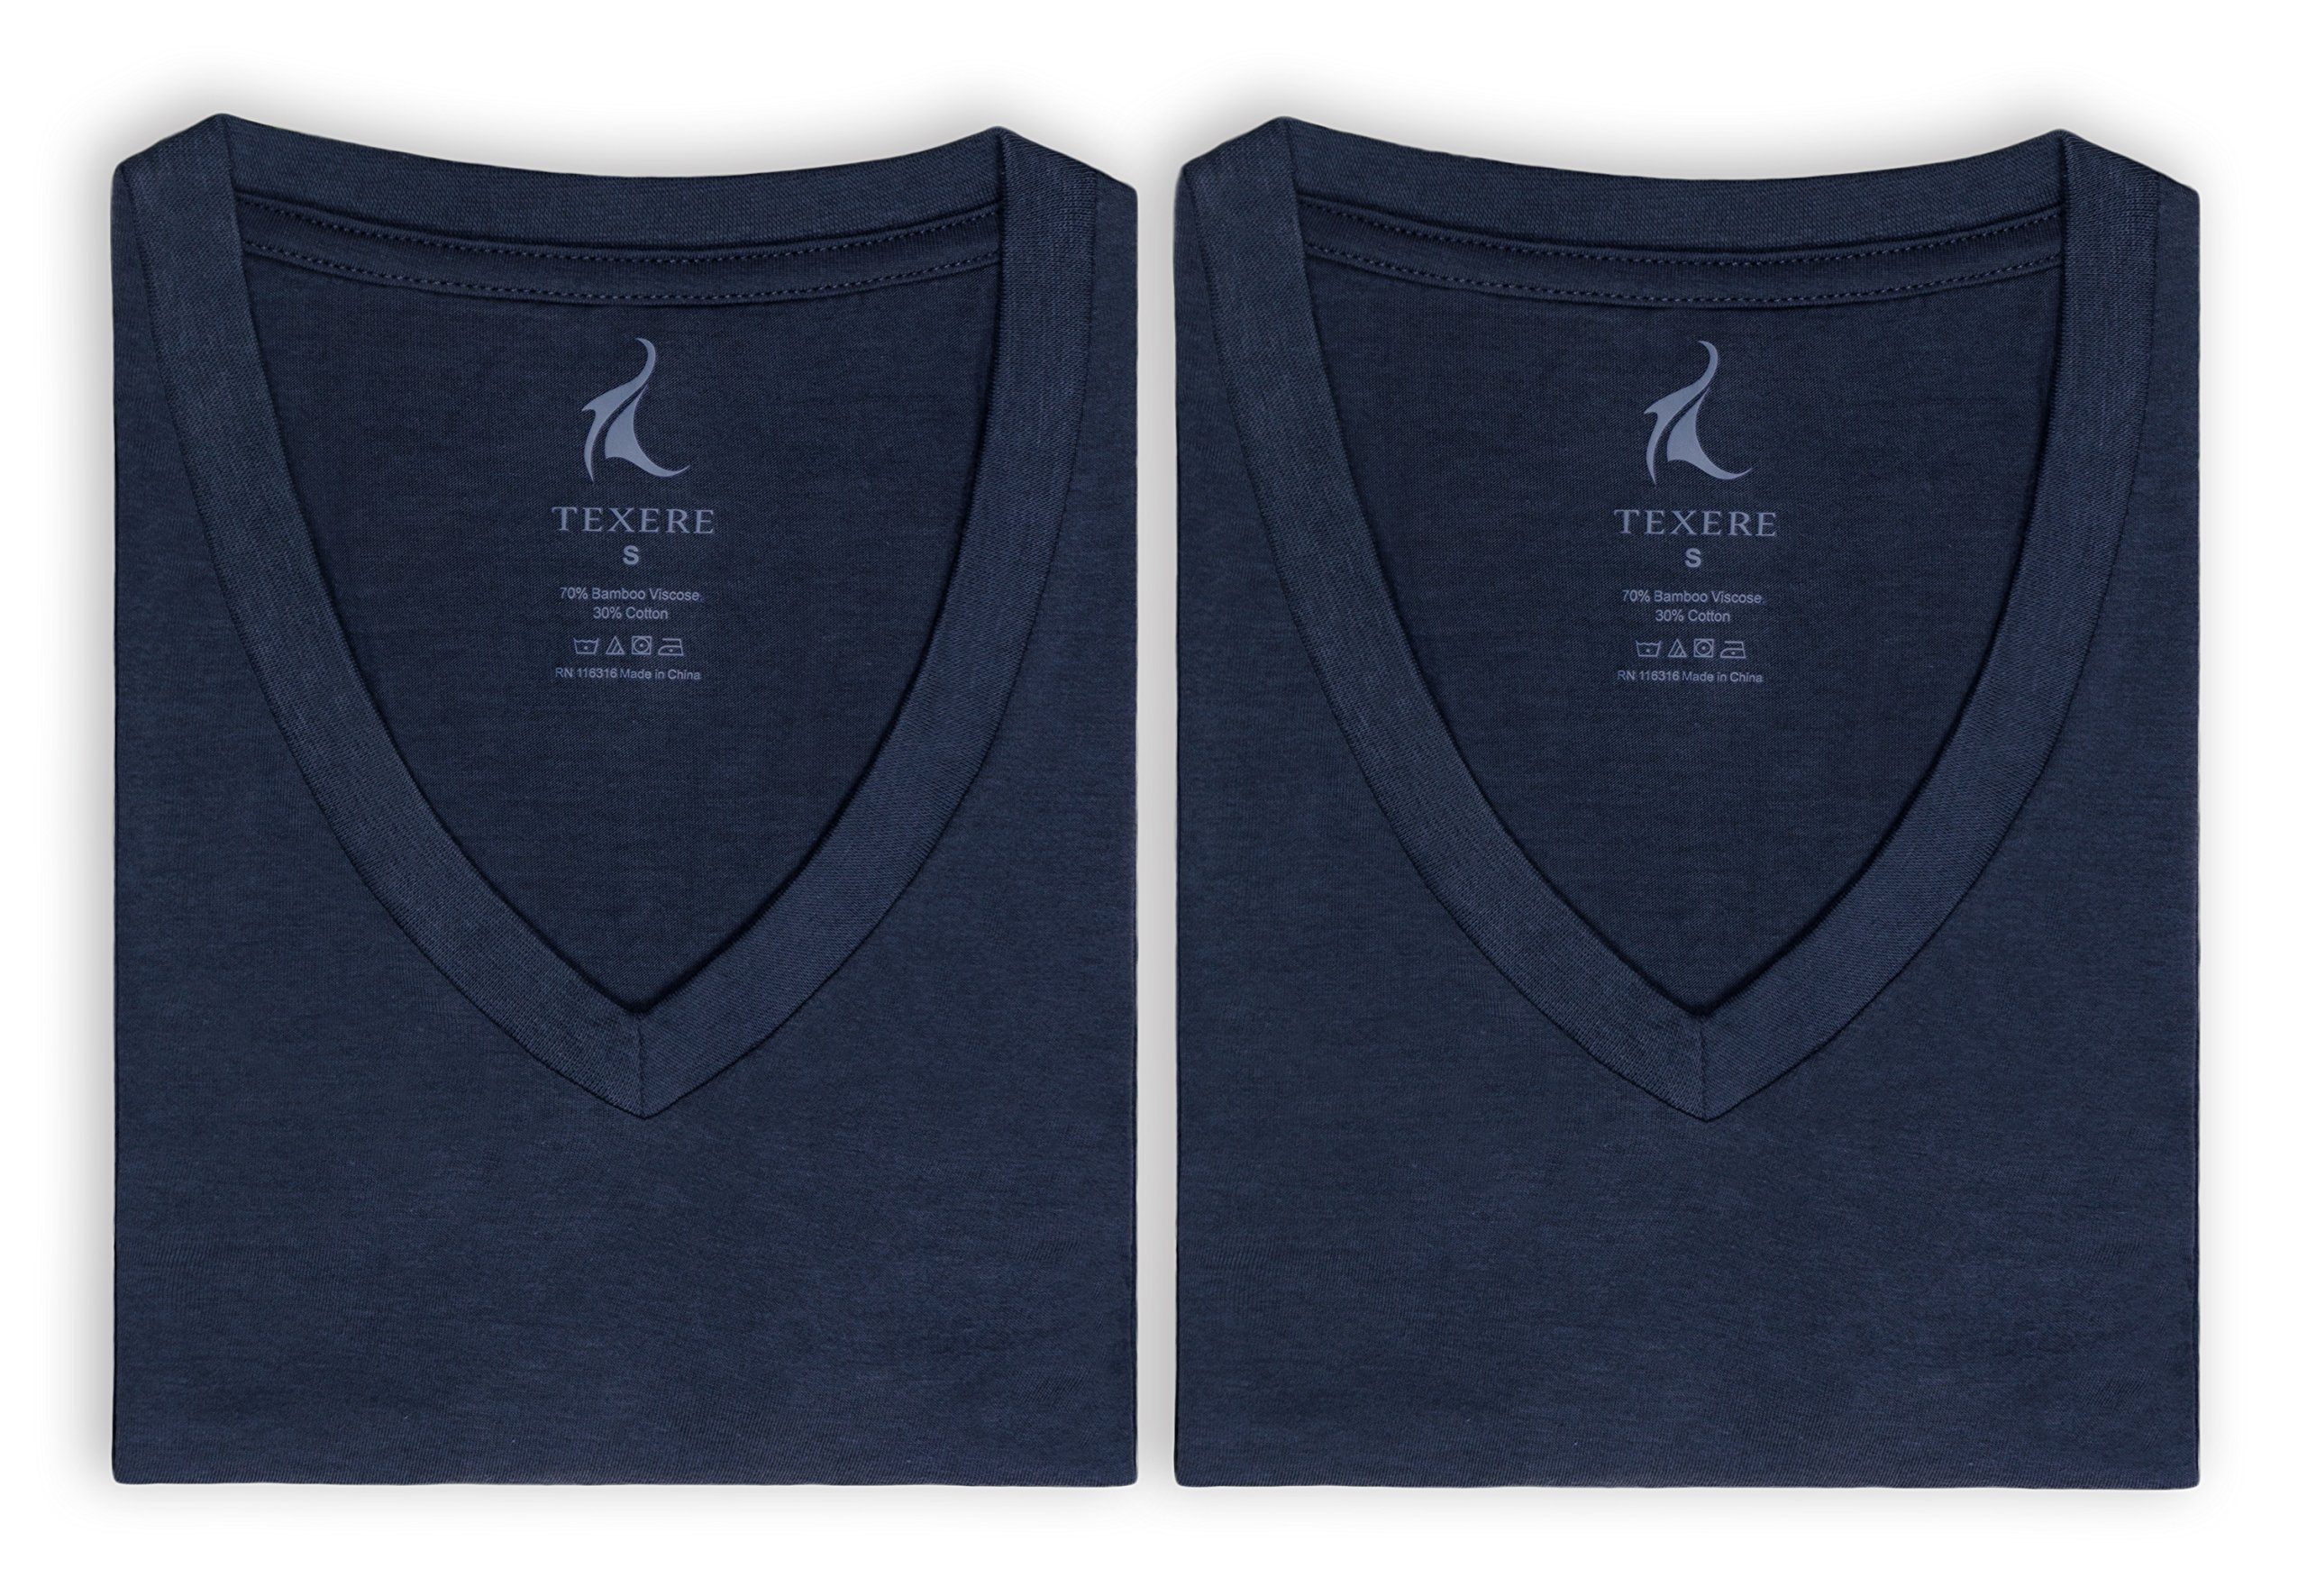 Men's V-Neck Undershirts in Bamboo Viscose - 2 Pack Shirt for Him by Texere (Midnight Blue, Large) Great Comfy Travel Short Sleeve Shirts for Guys MB6302-MID-L